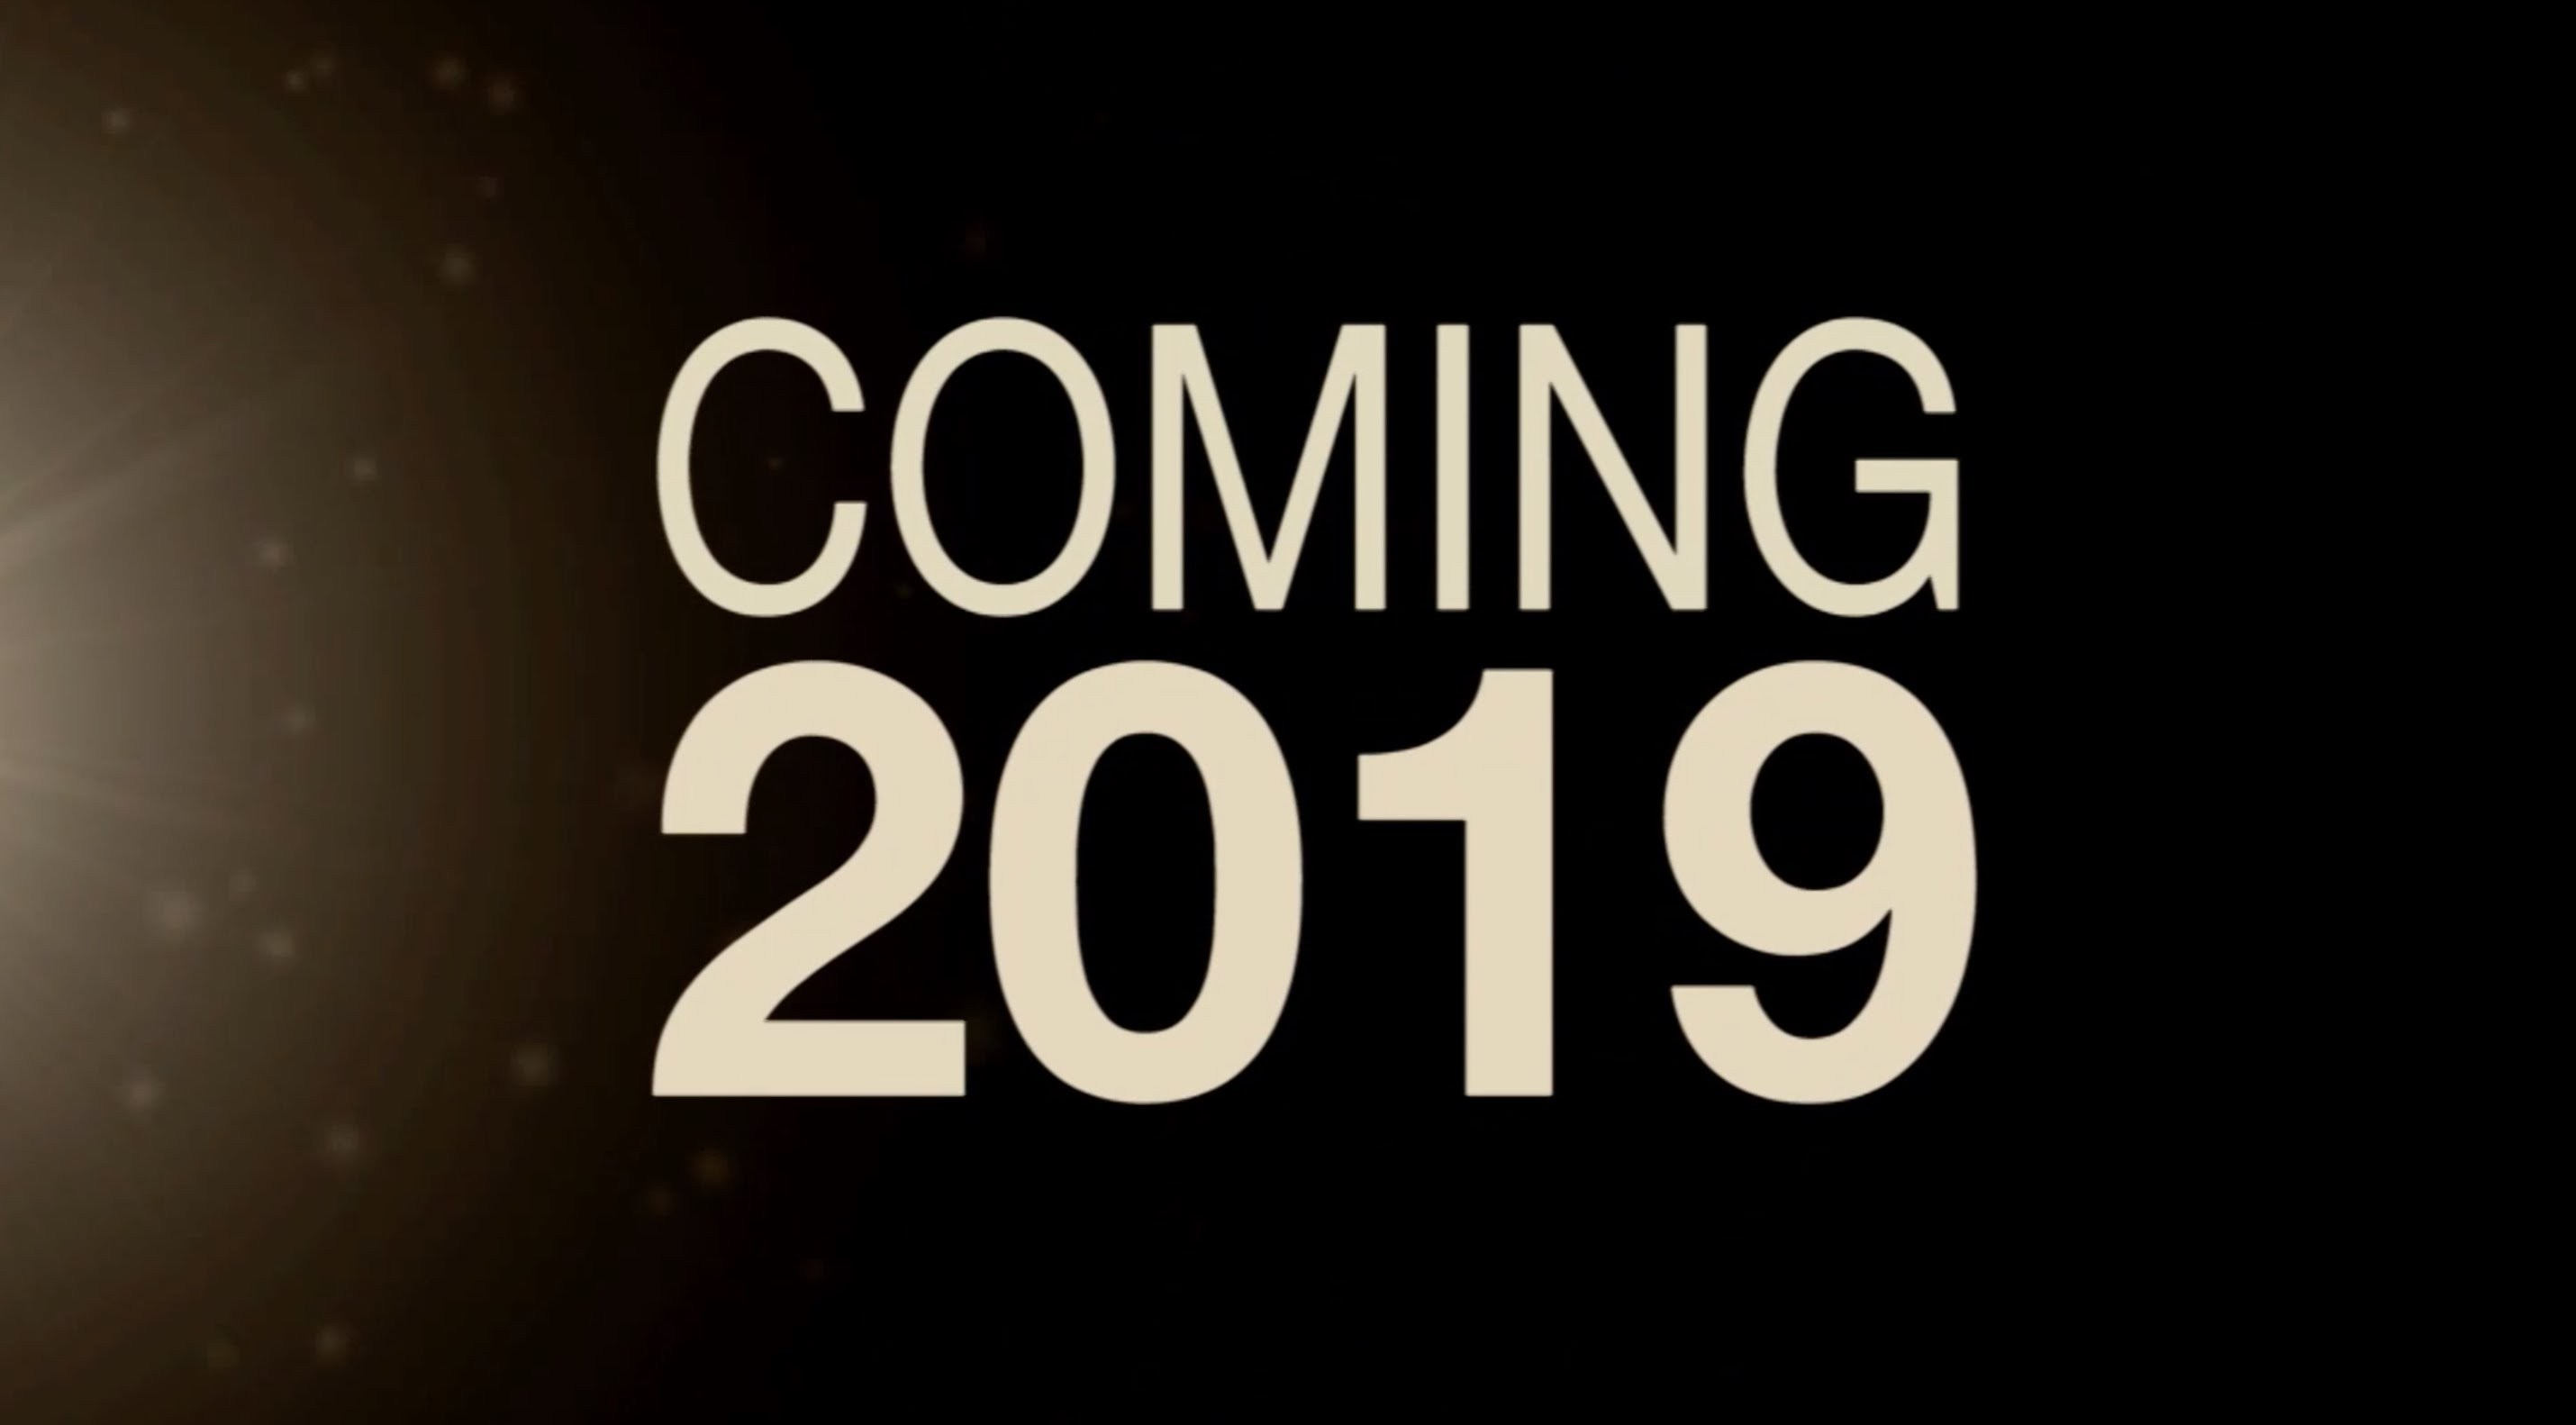 Coming attractions 2019